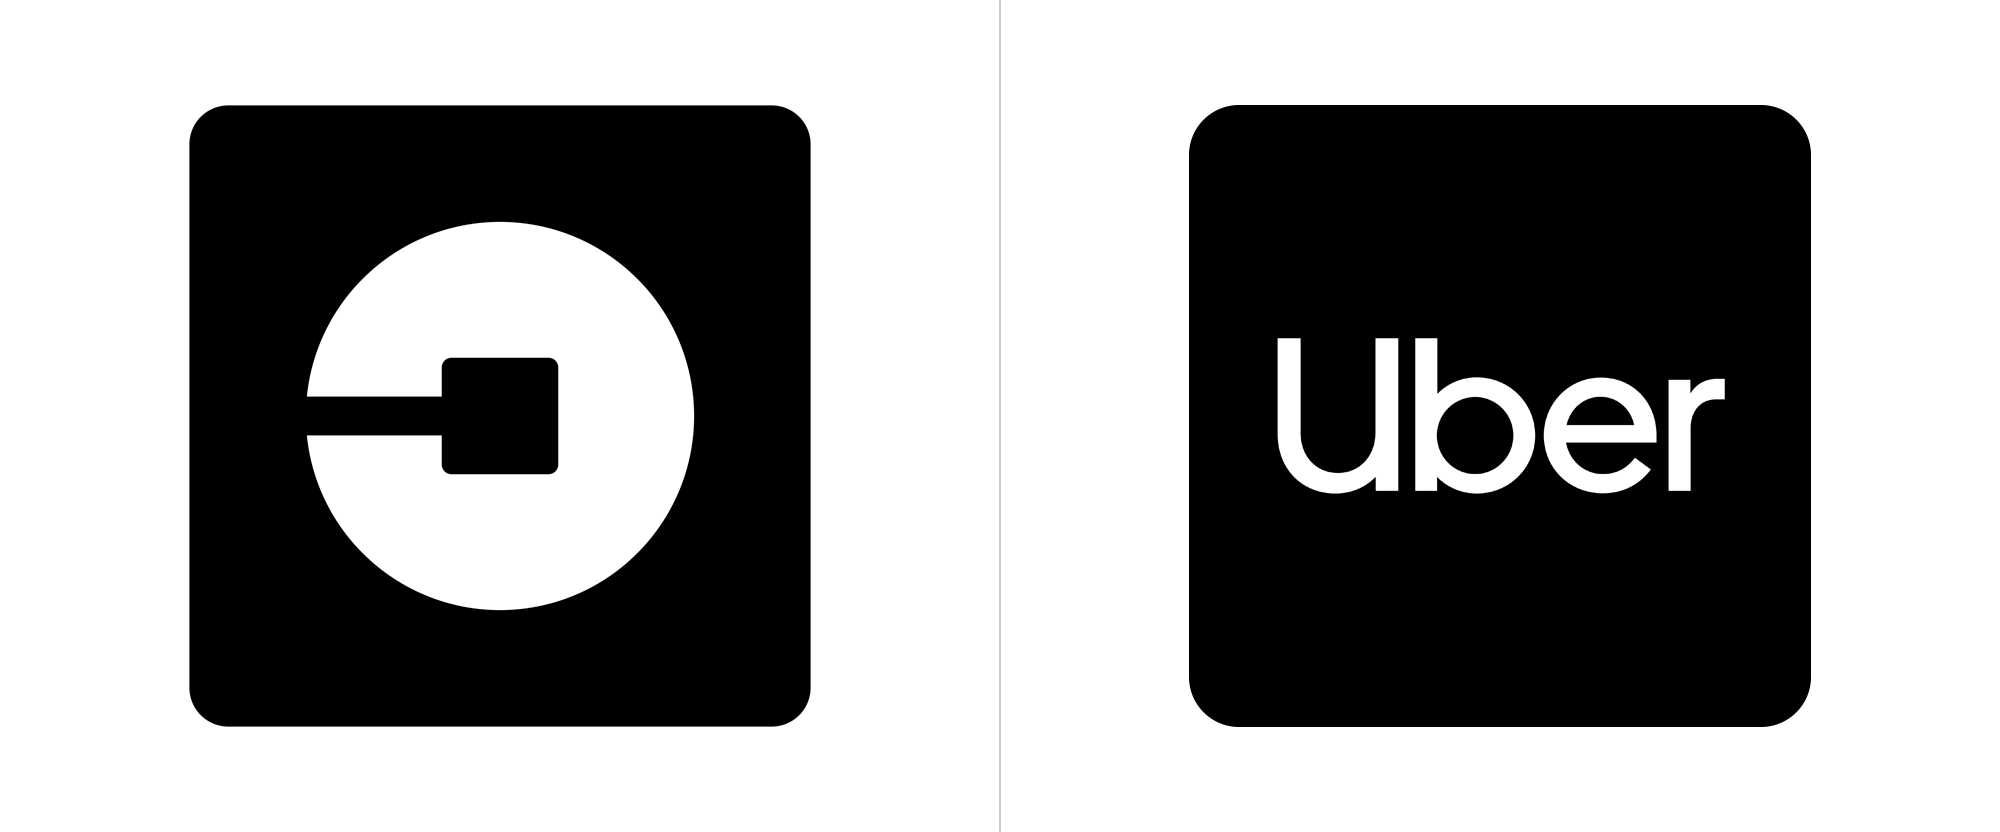 Brand New New Logo and Identity for Uber by Wolff Olins and Inhouse